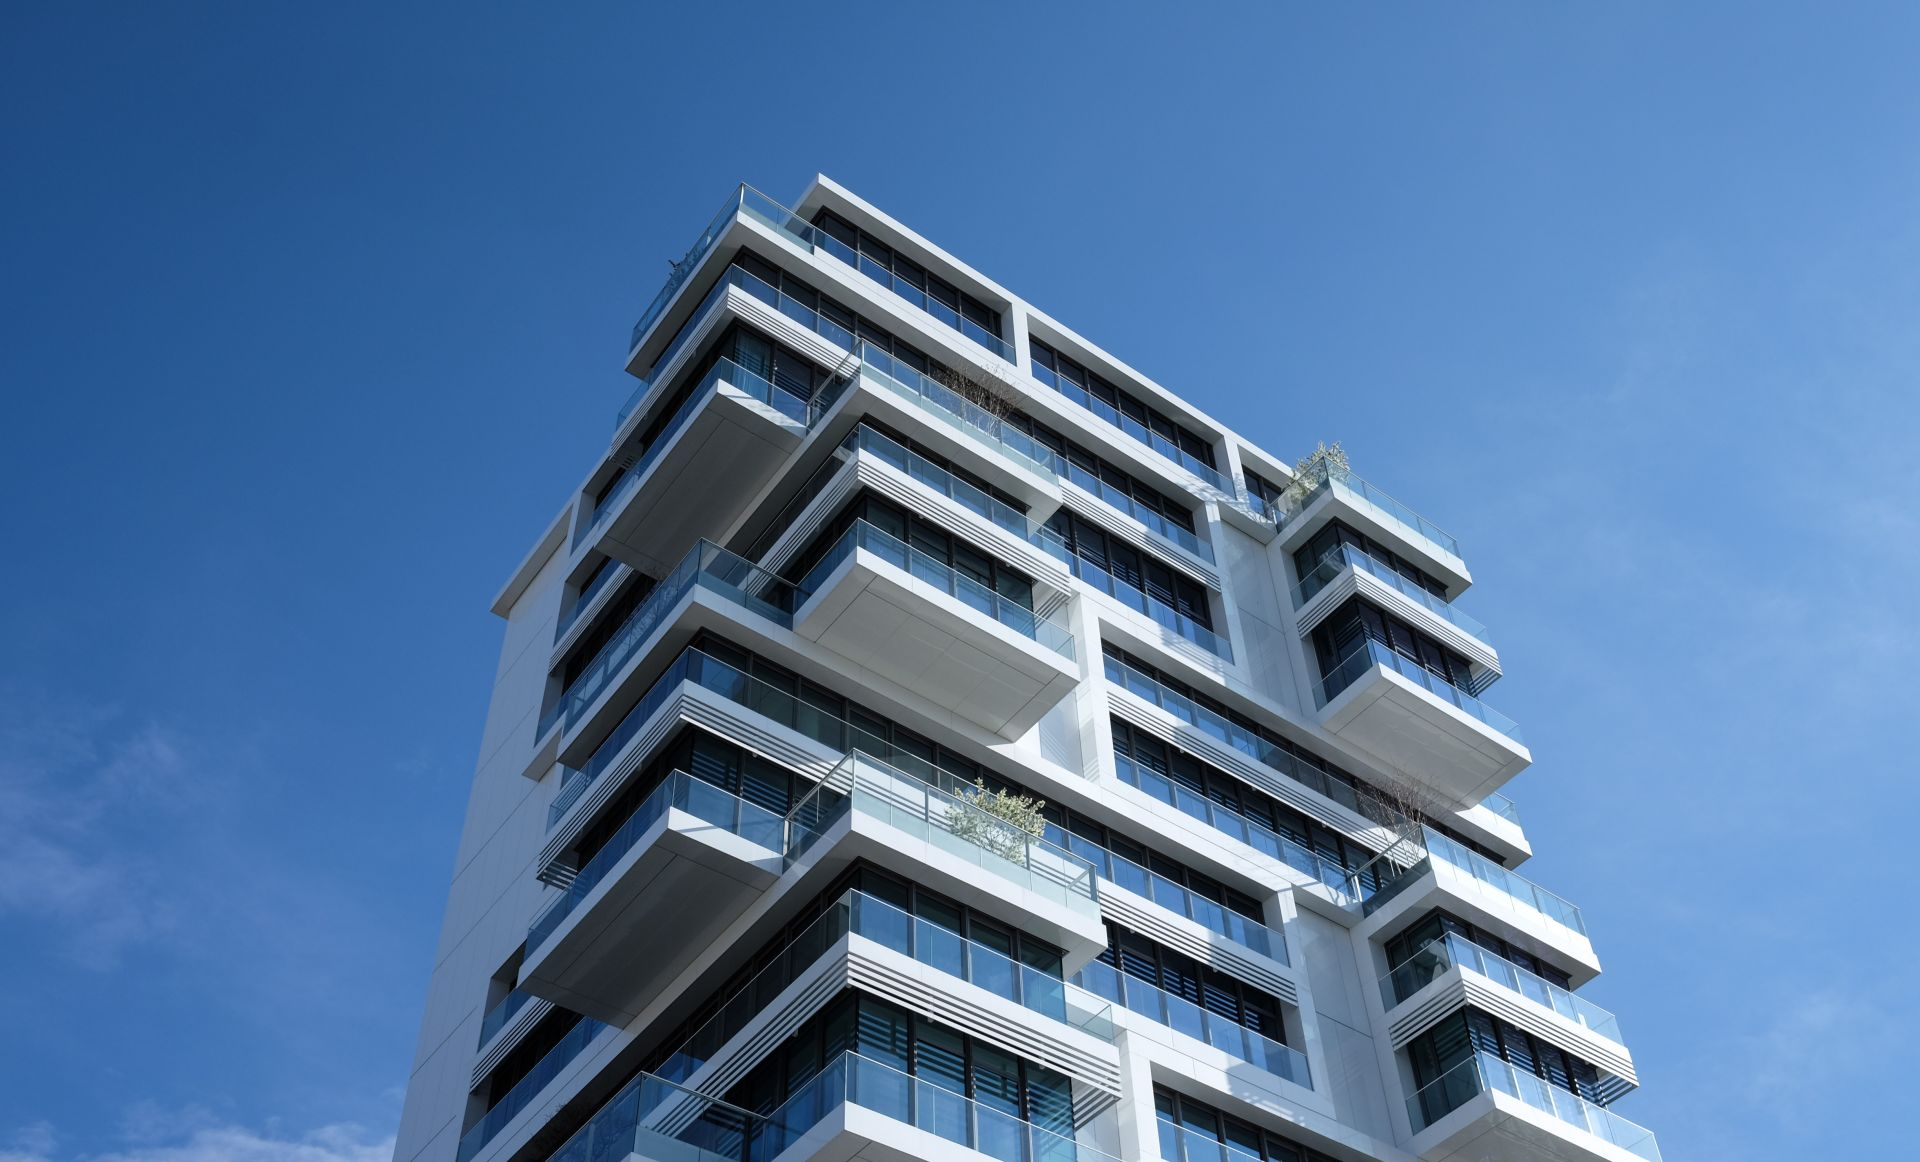 Demystifying the Condo